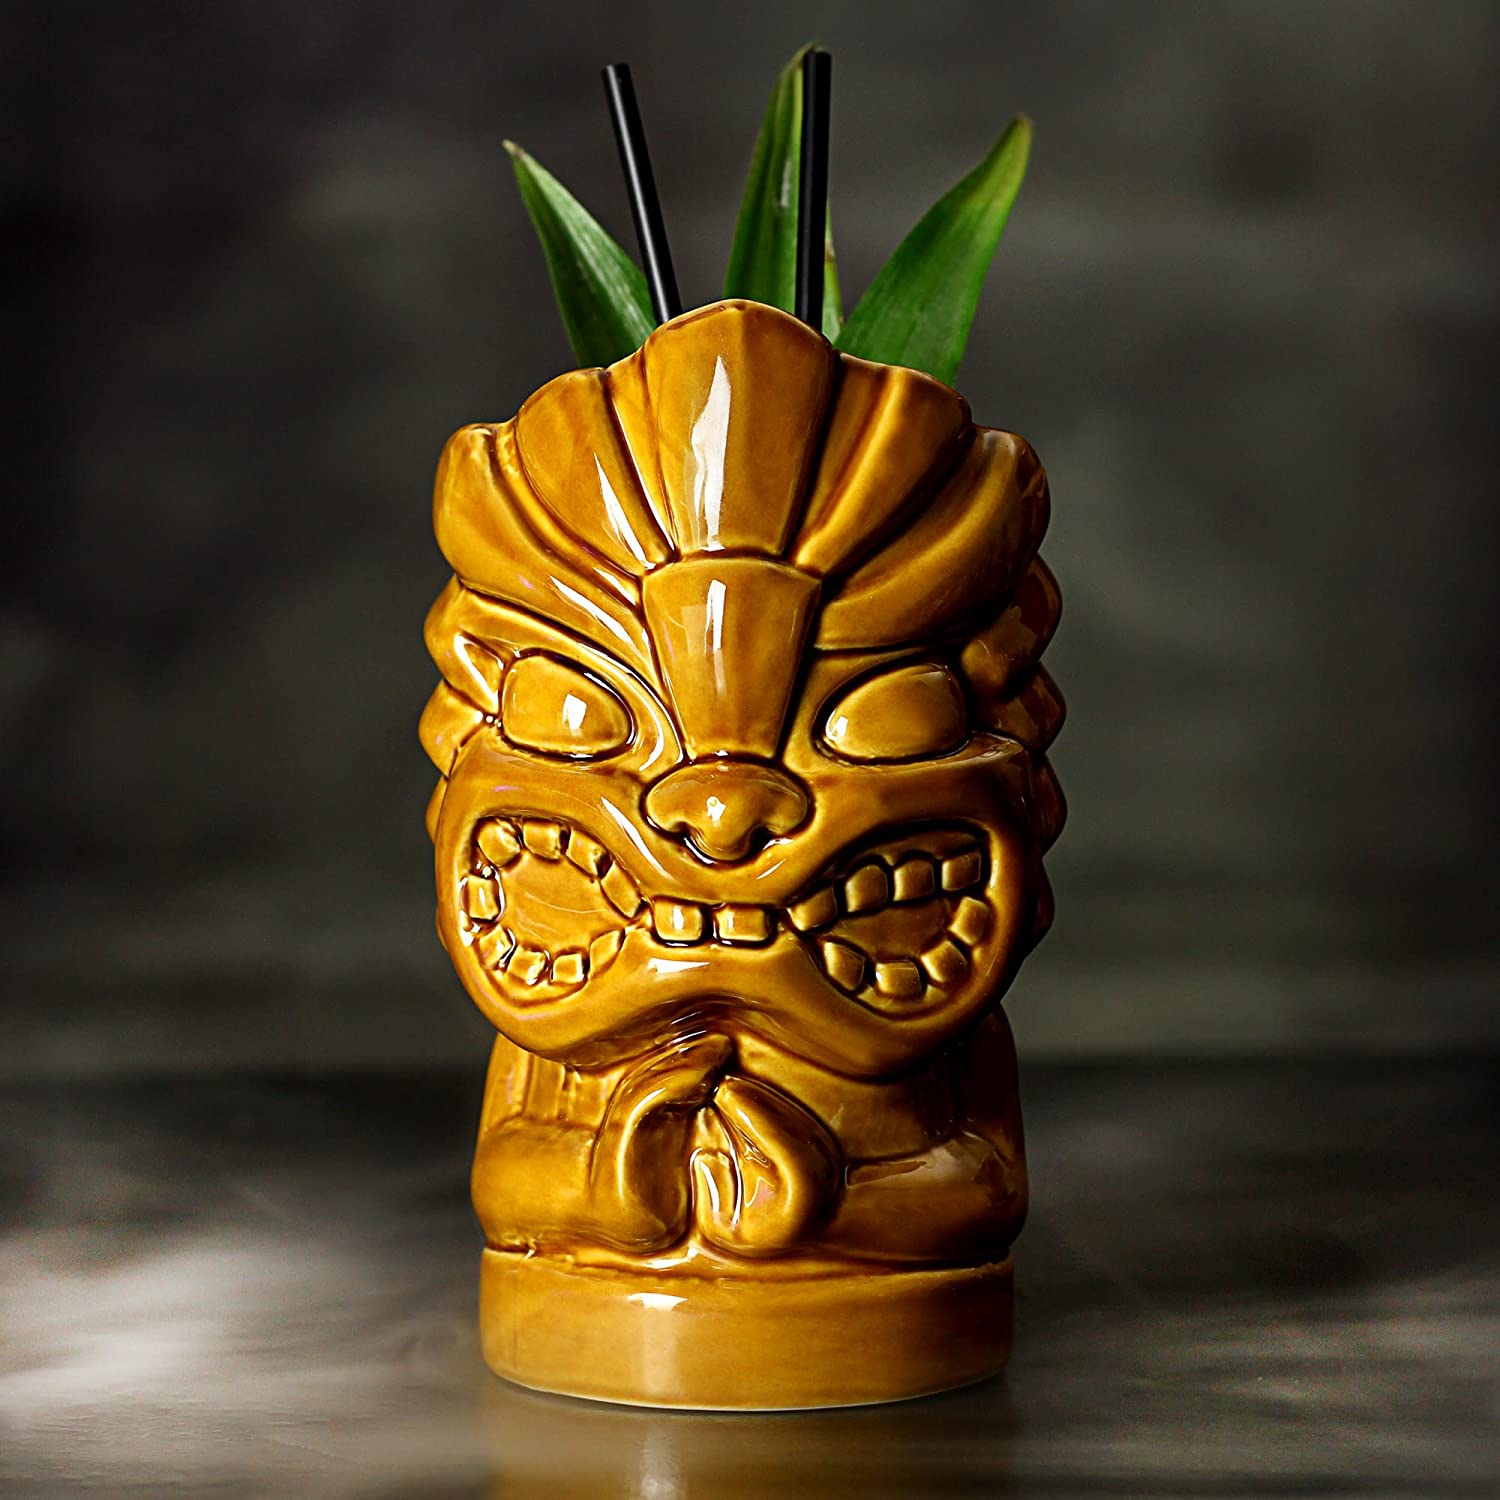 bar@drinkstuff Tiki Hands Mug 27.5oz/780ml - Novelty Ceramic Hawaiian Themed Cup for Cocktails and Luau Parties